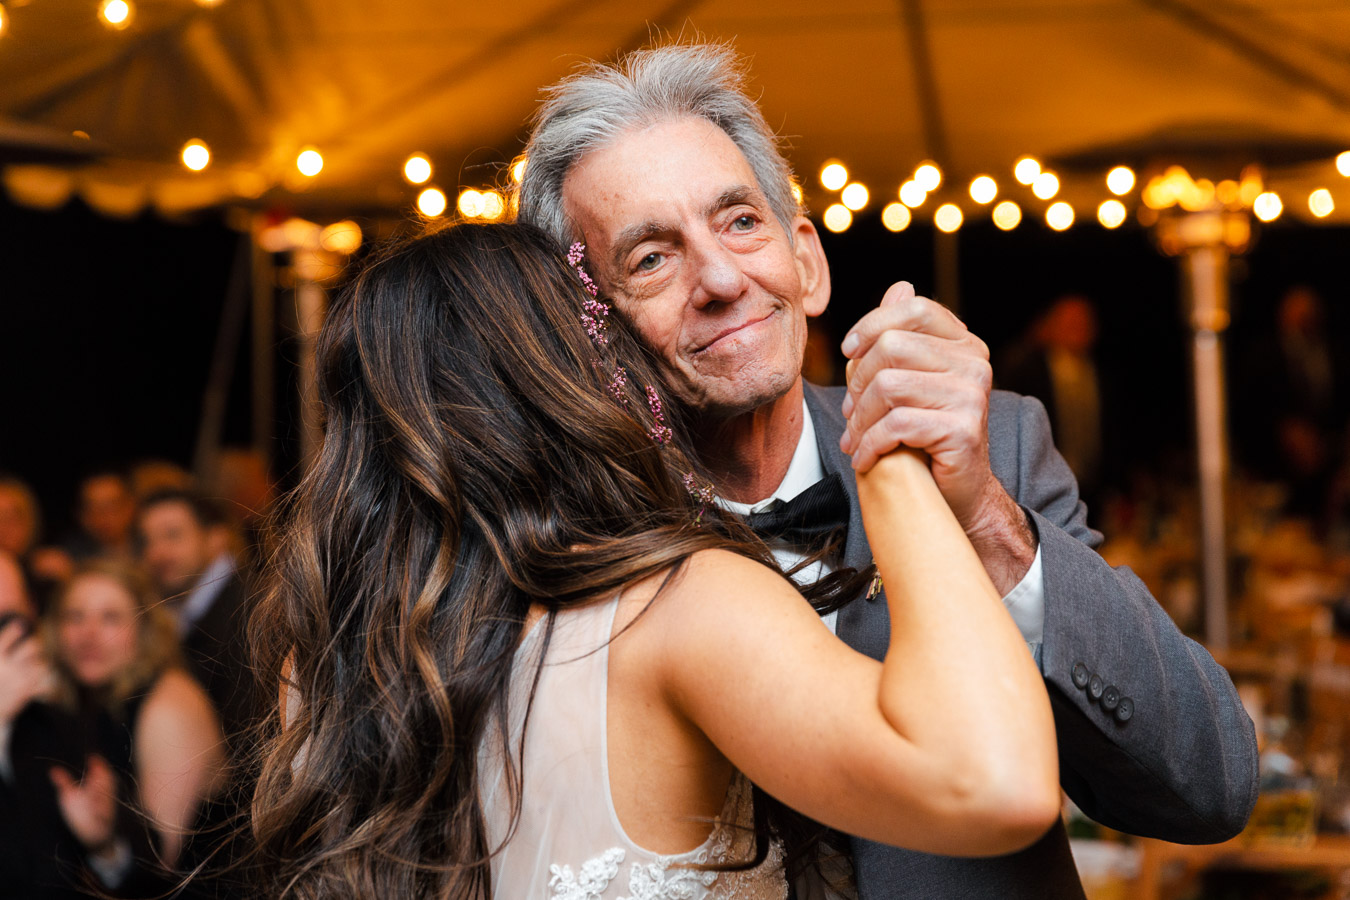 Bride Father Dance